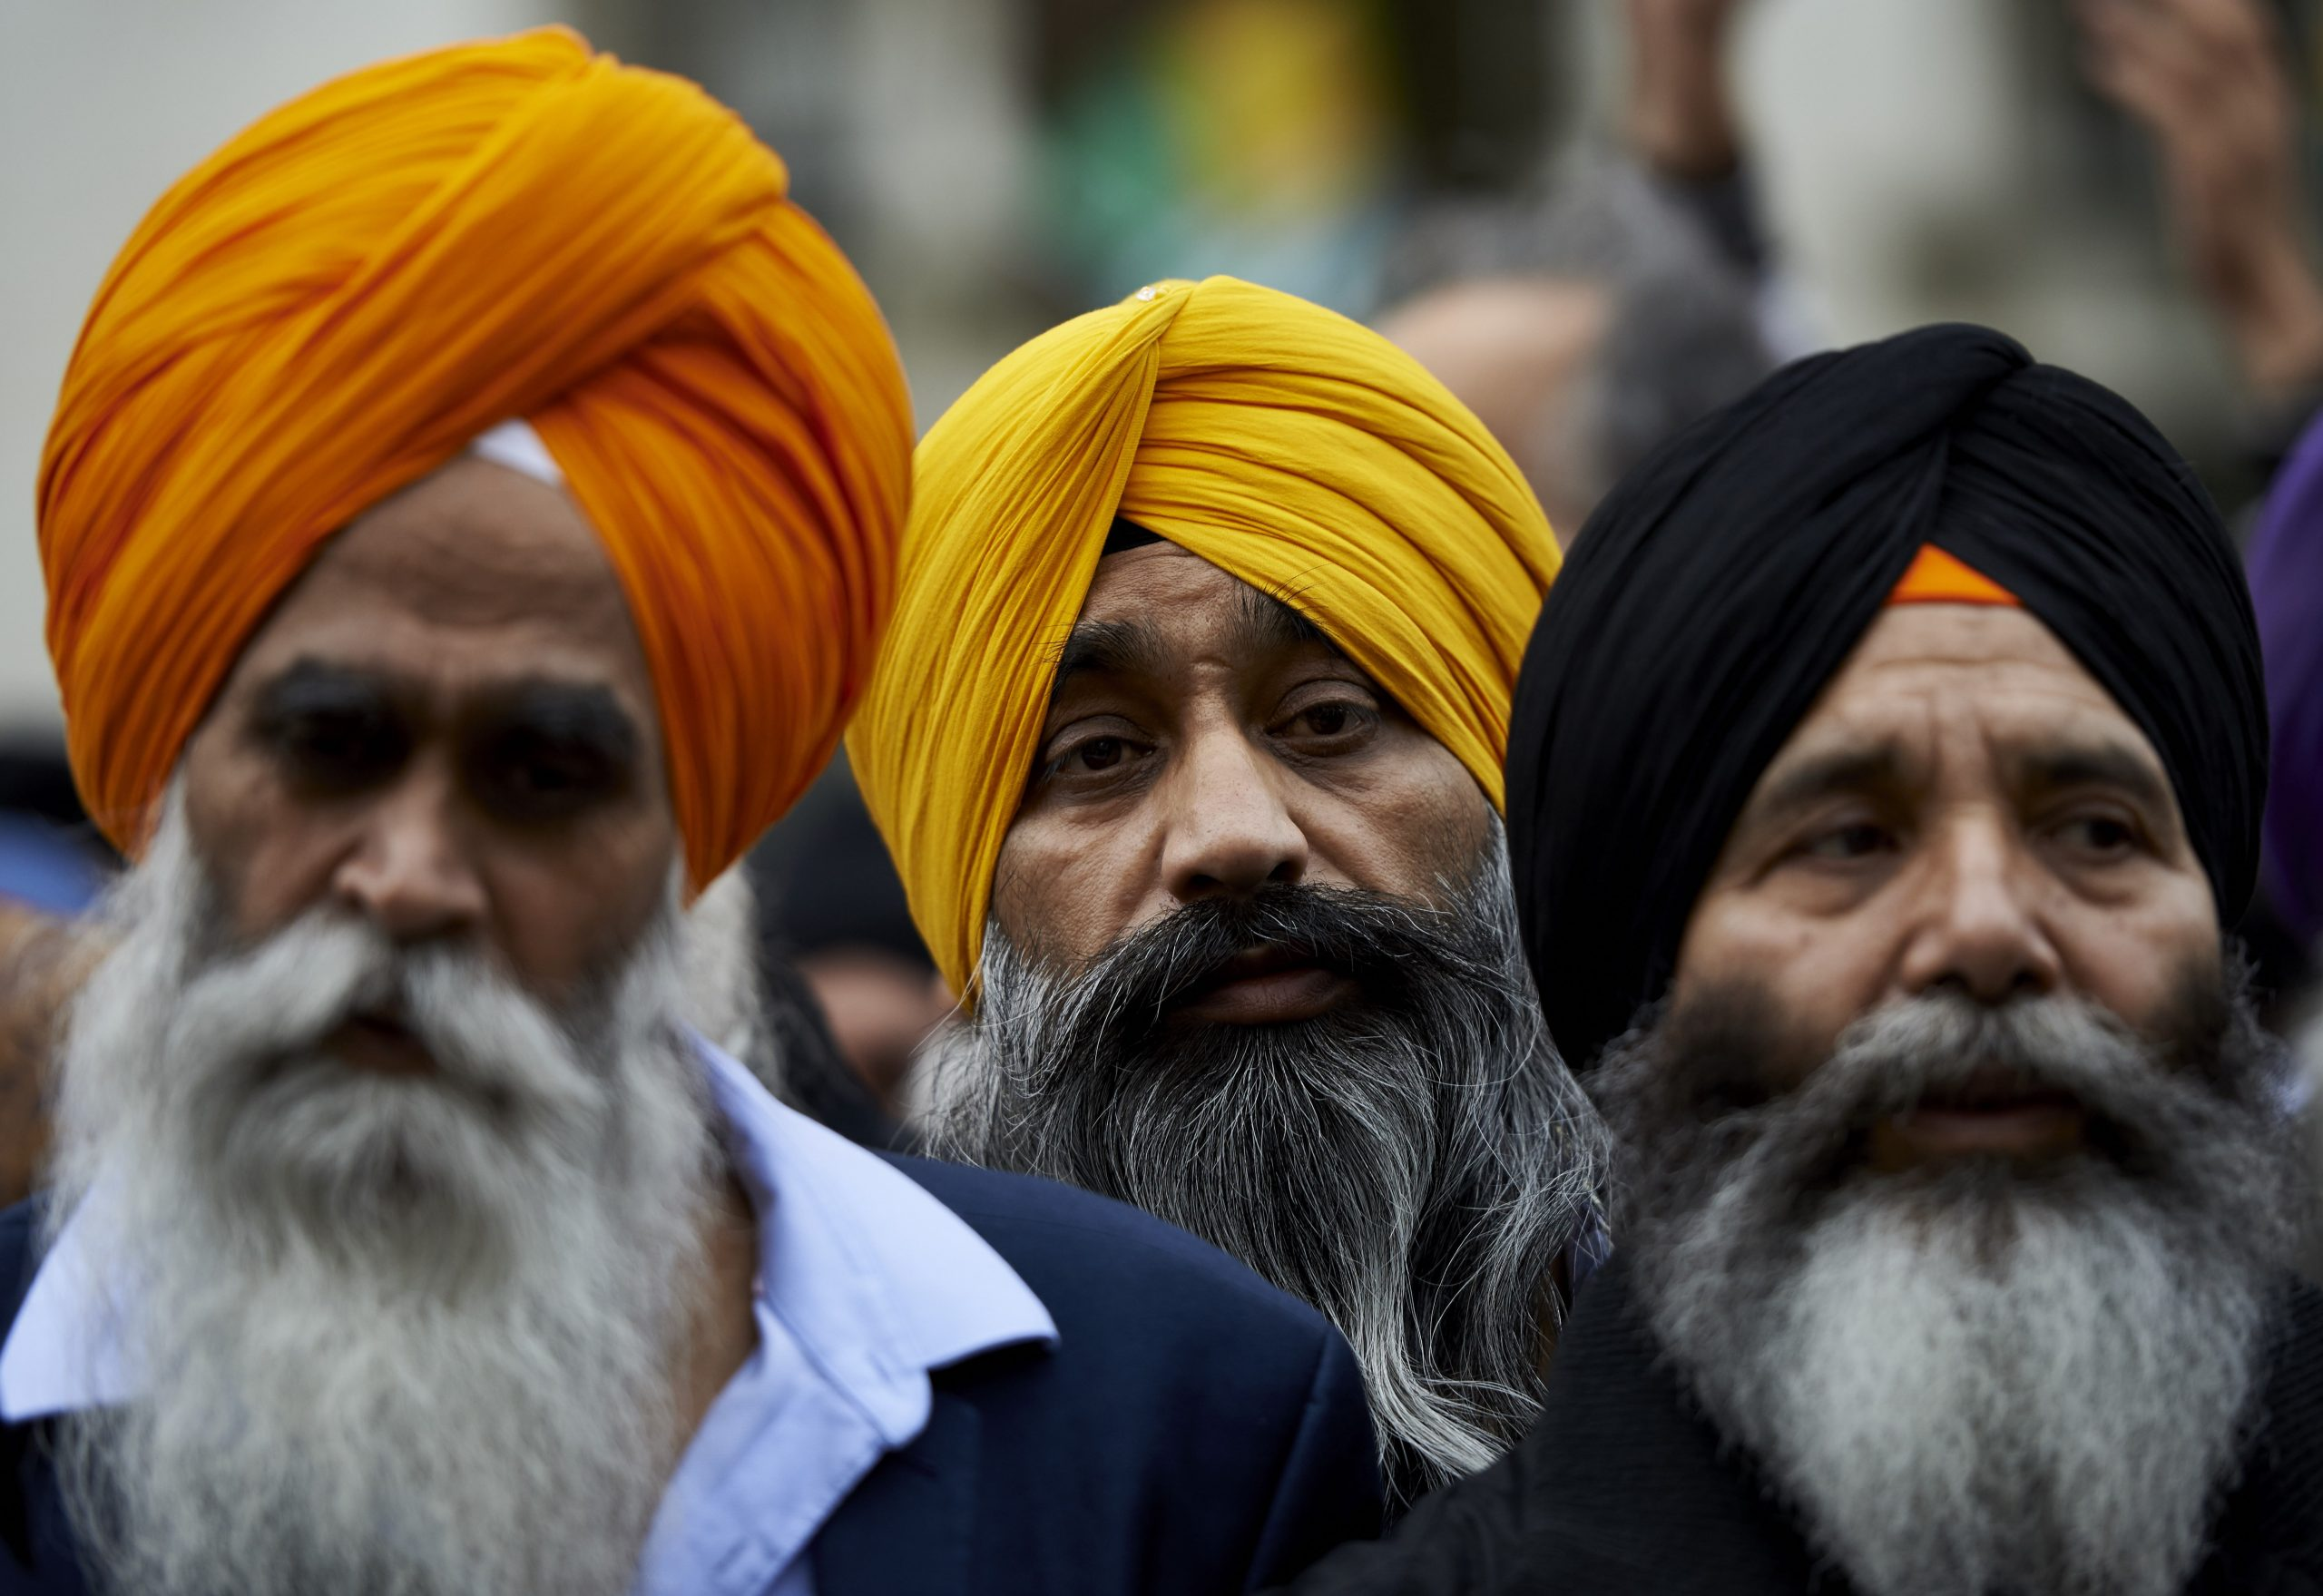 "Protestors from the Sikh community demonstrate against Indian Prime Minister Narendra Modi by Parliament square in central London on November 12, 2015. India's Prime Minister Narendra Modi today began a three-day visit to London focused on trade deals and connecting with the diaspora as critics warned of a ""rising climate of fear"" under his rule. AFP PHOTO / NIKLAS HALLE'N        (Photo credit should read NIKLAS HALLE'N/AFP via Getty Images)"